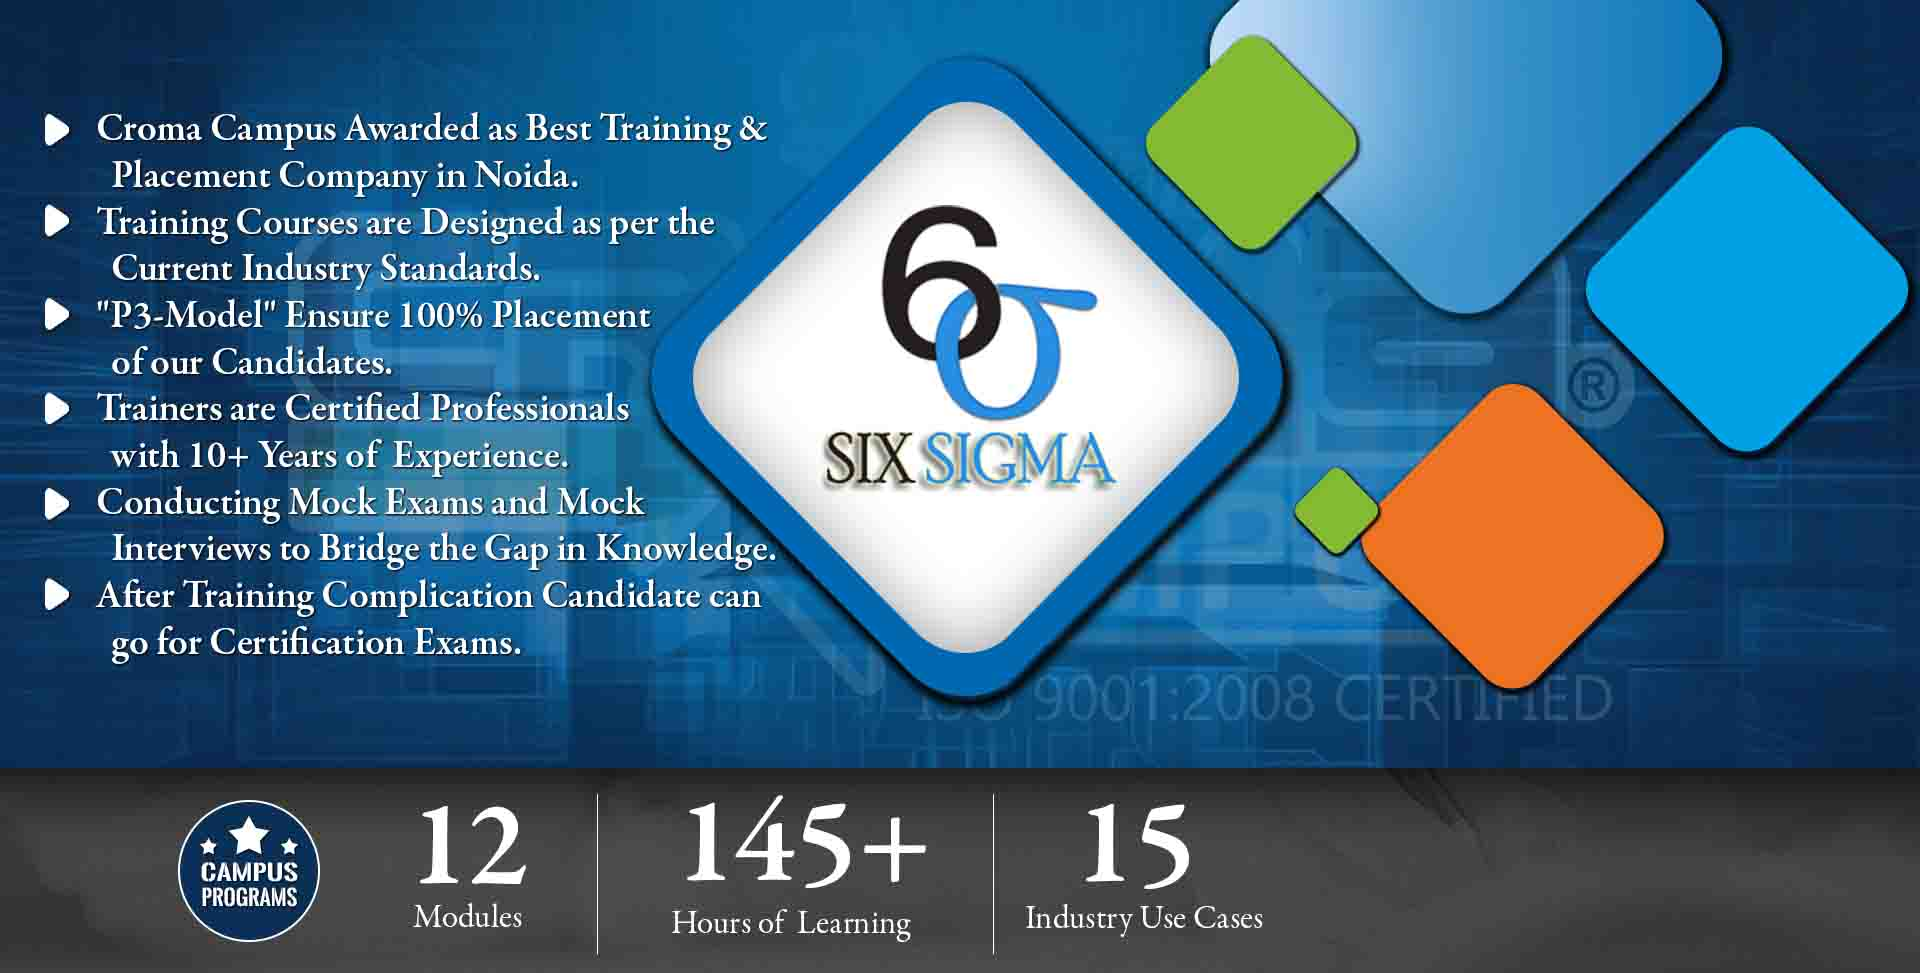 Master Black Belt Training in Noida- Croma Campus